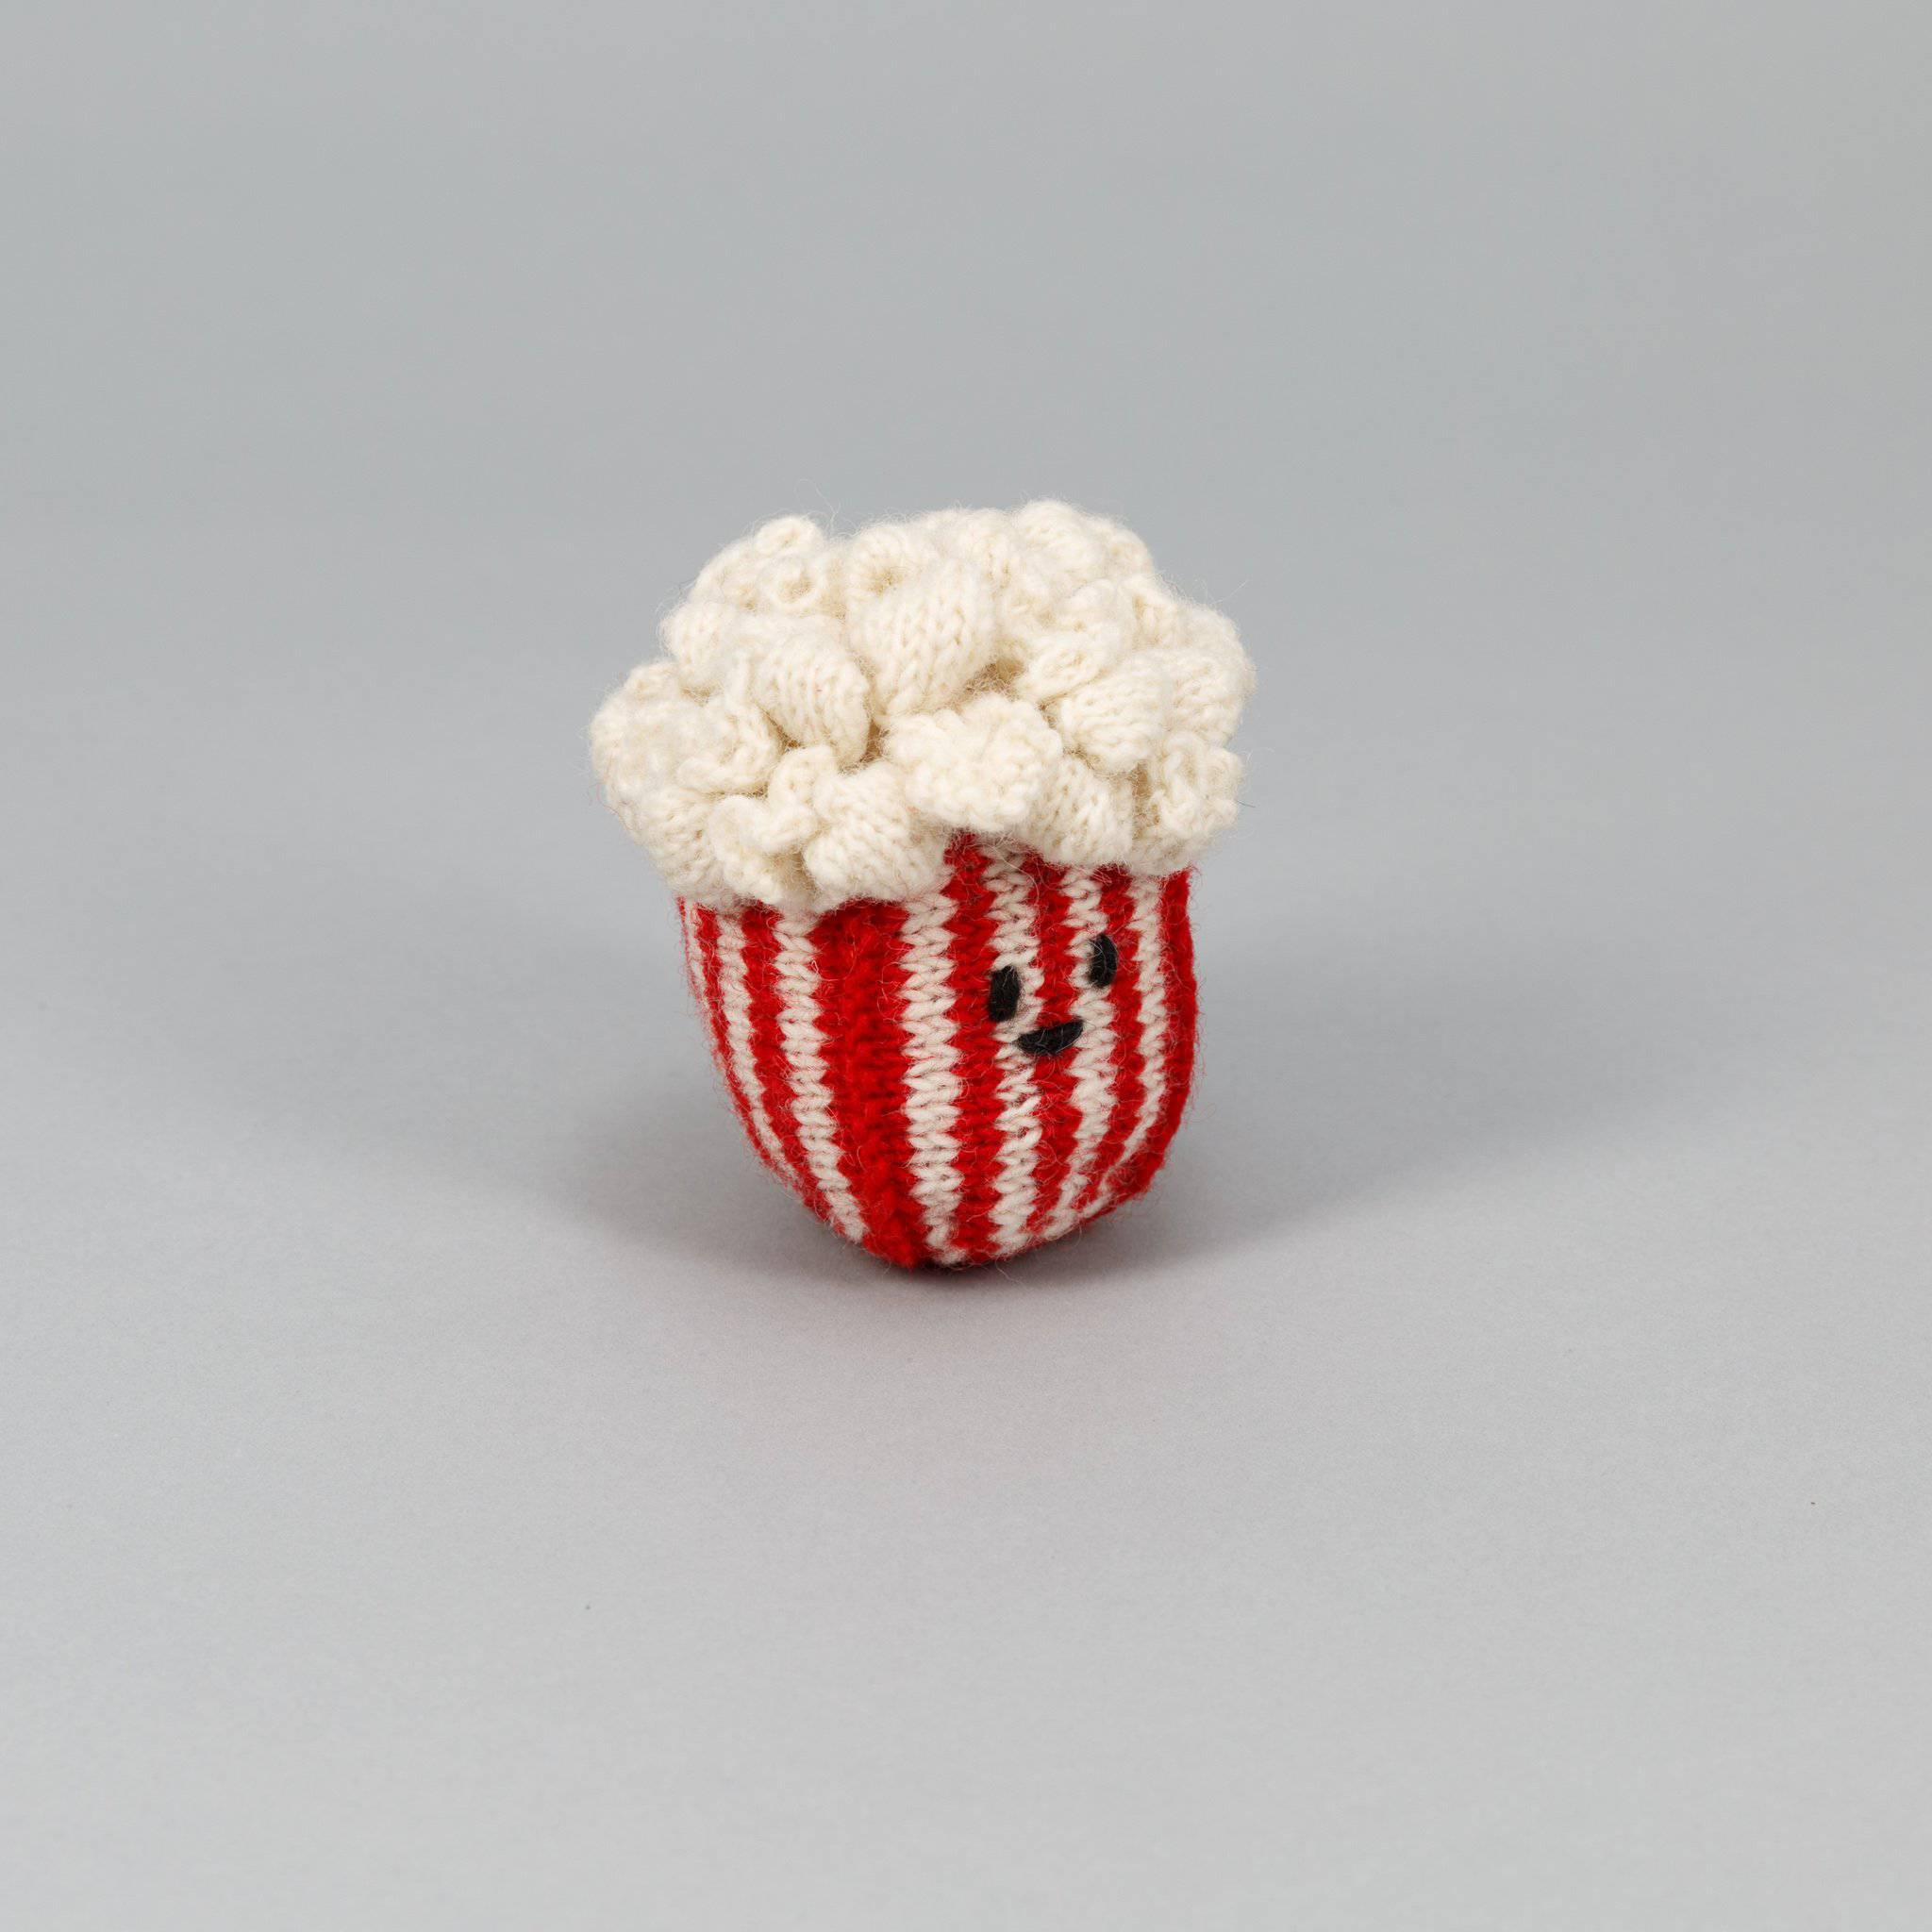 Popcorn Knitted Toy - Holler Brighton